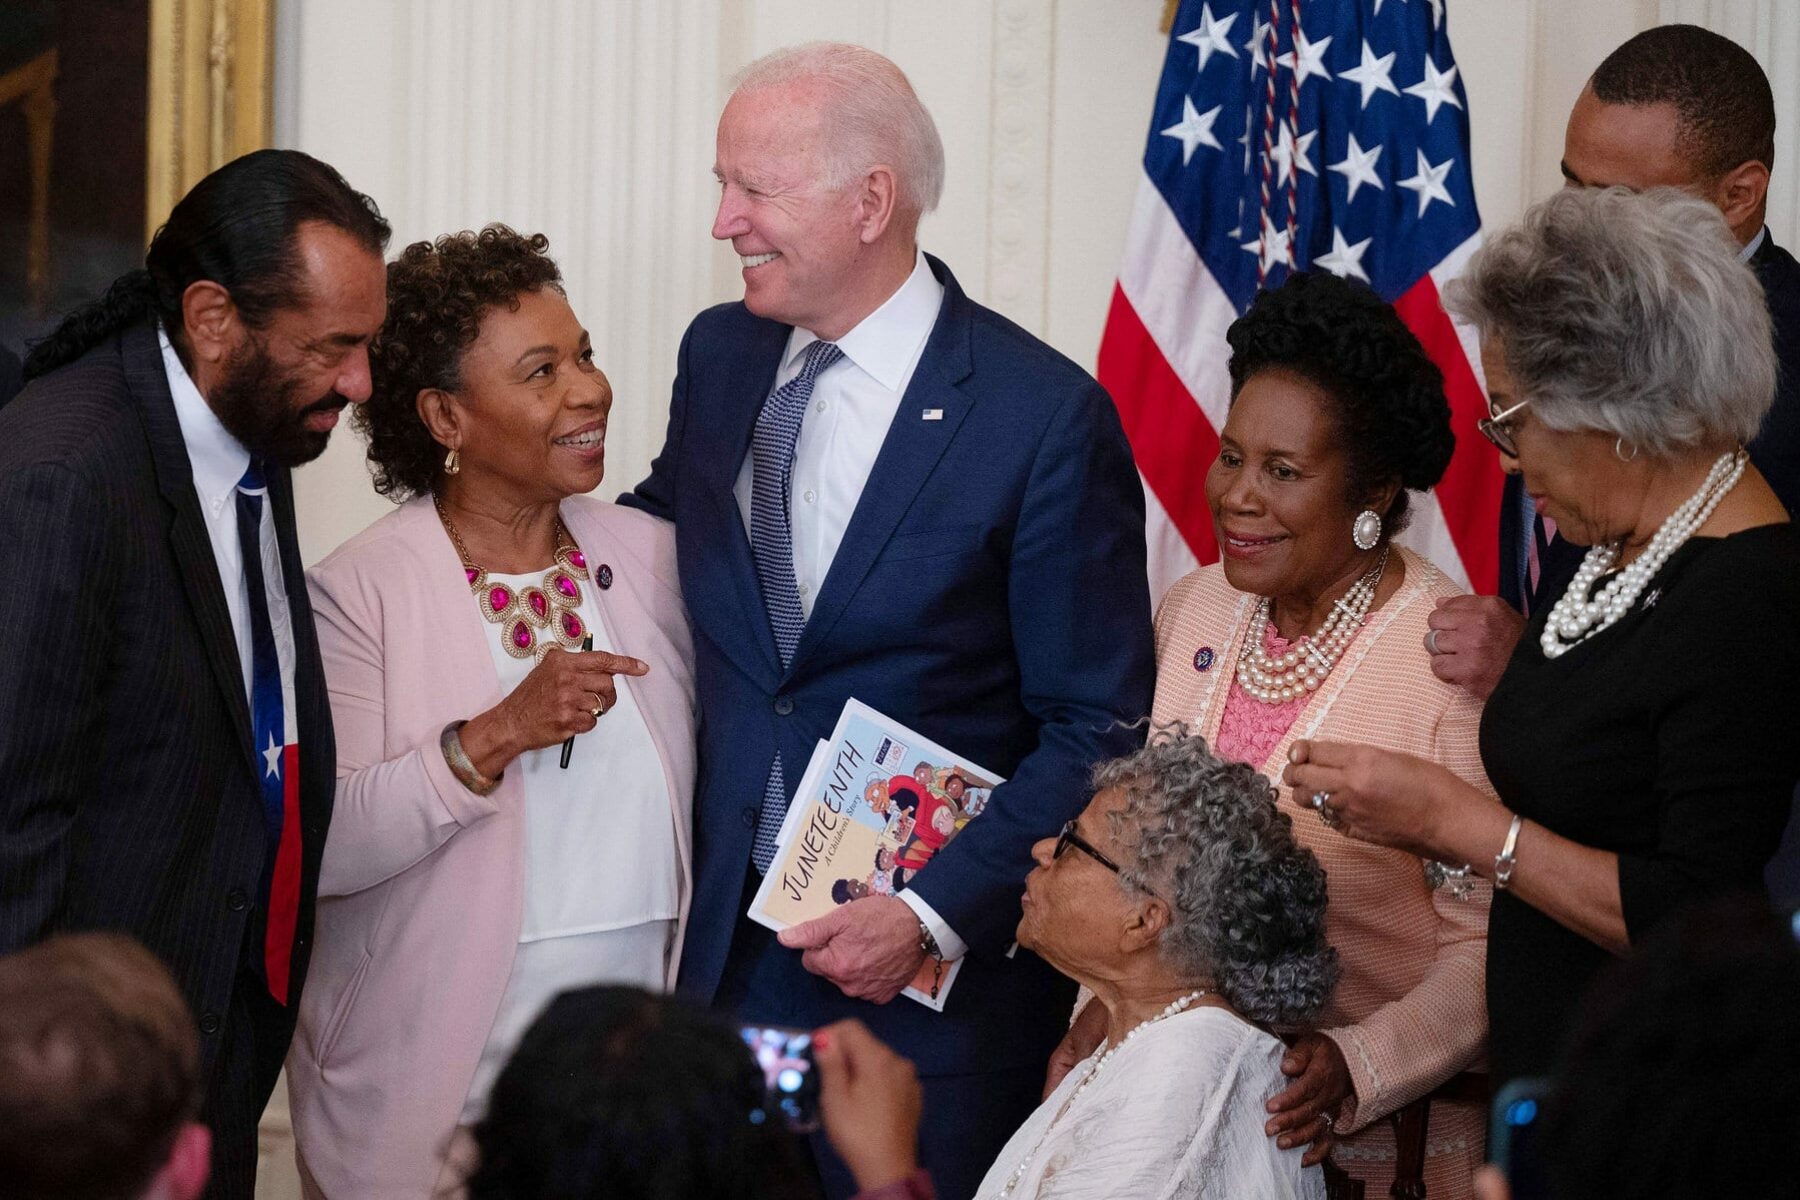 US President Joe Biden speaks with Opal Lee and guests in the White House.